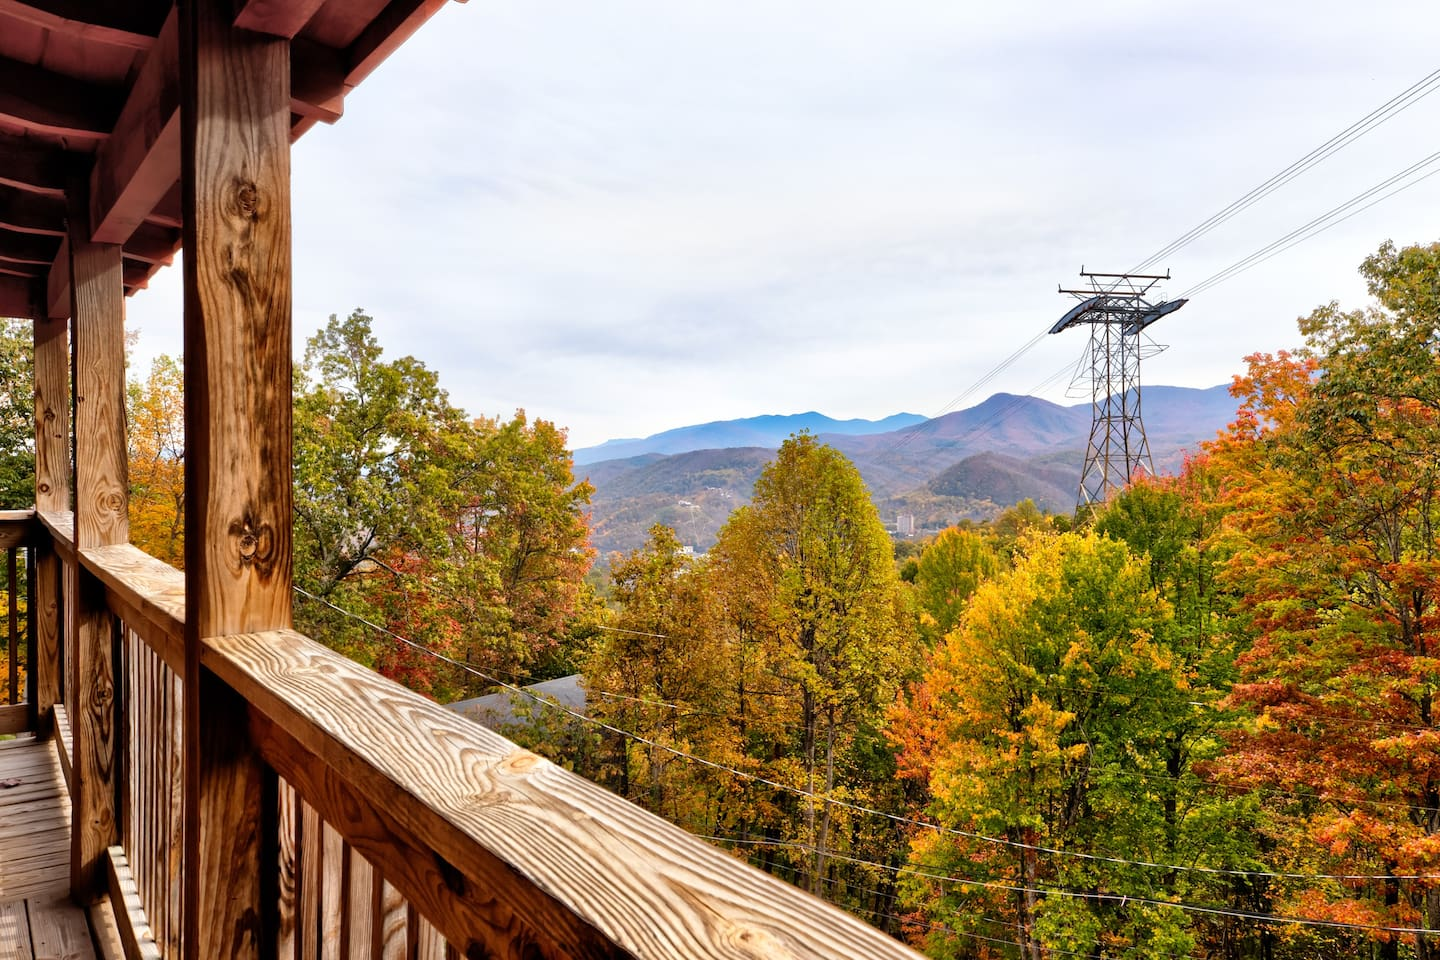 Gorgeous view of fall colors from the deck